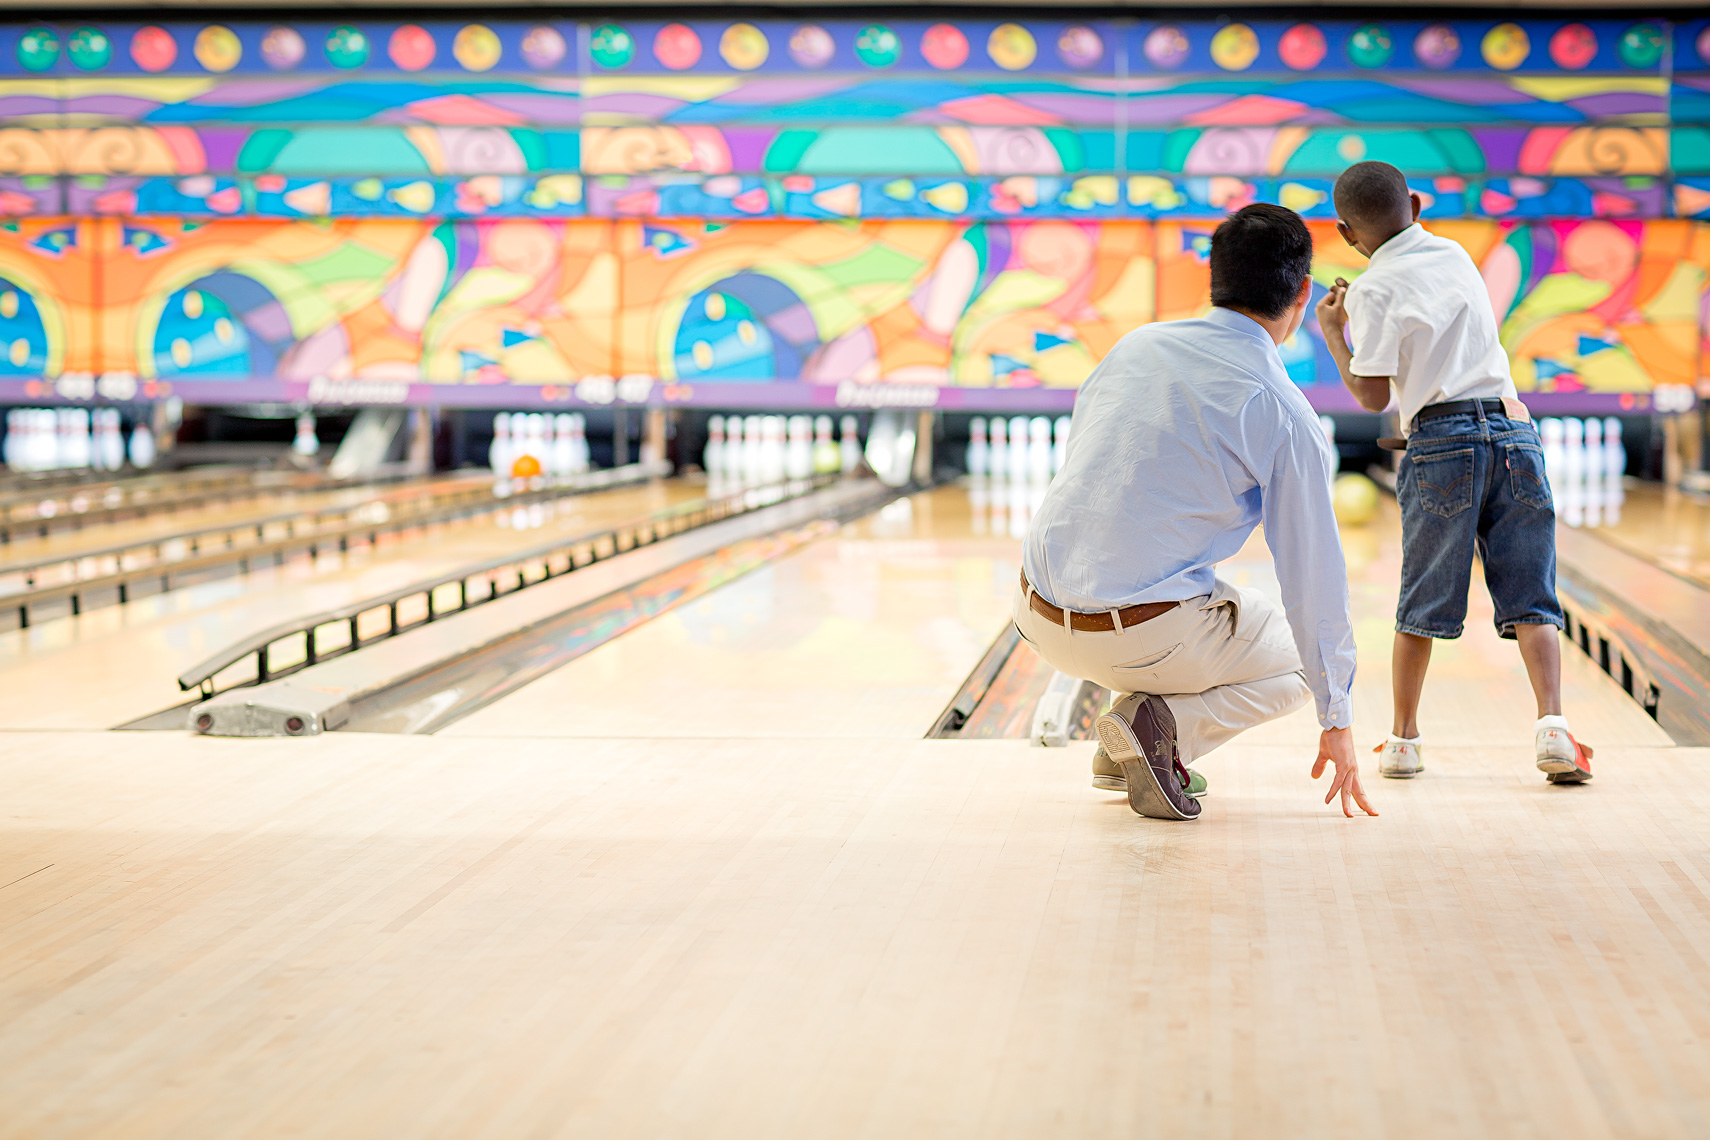 Adult and boy bowling, shot by Steven P. Widoff